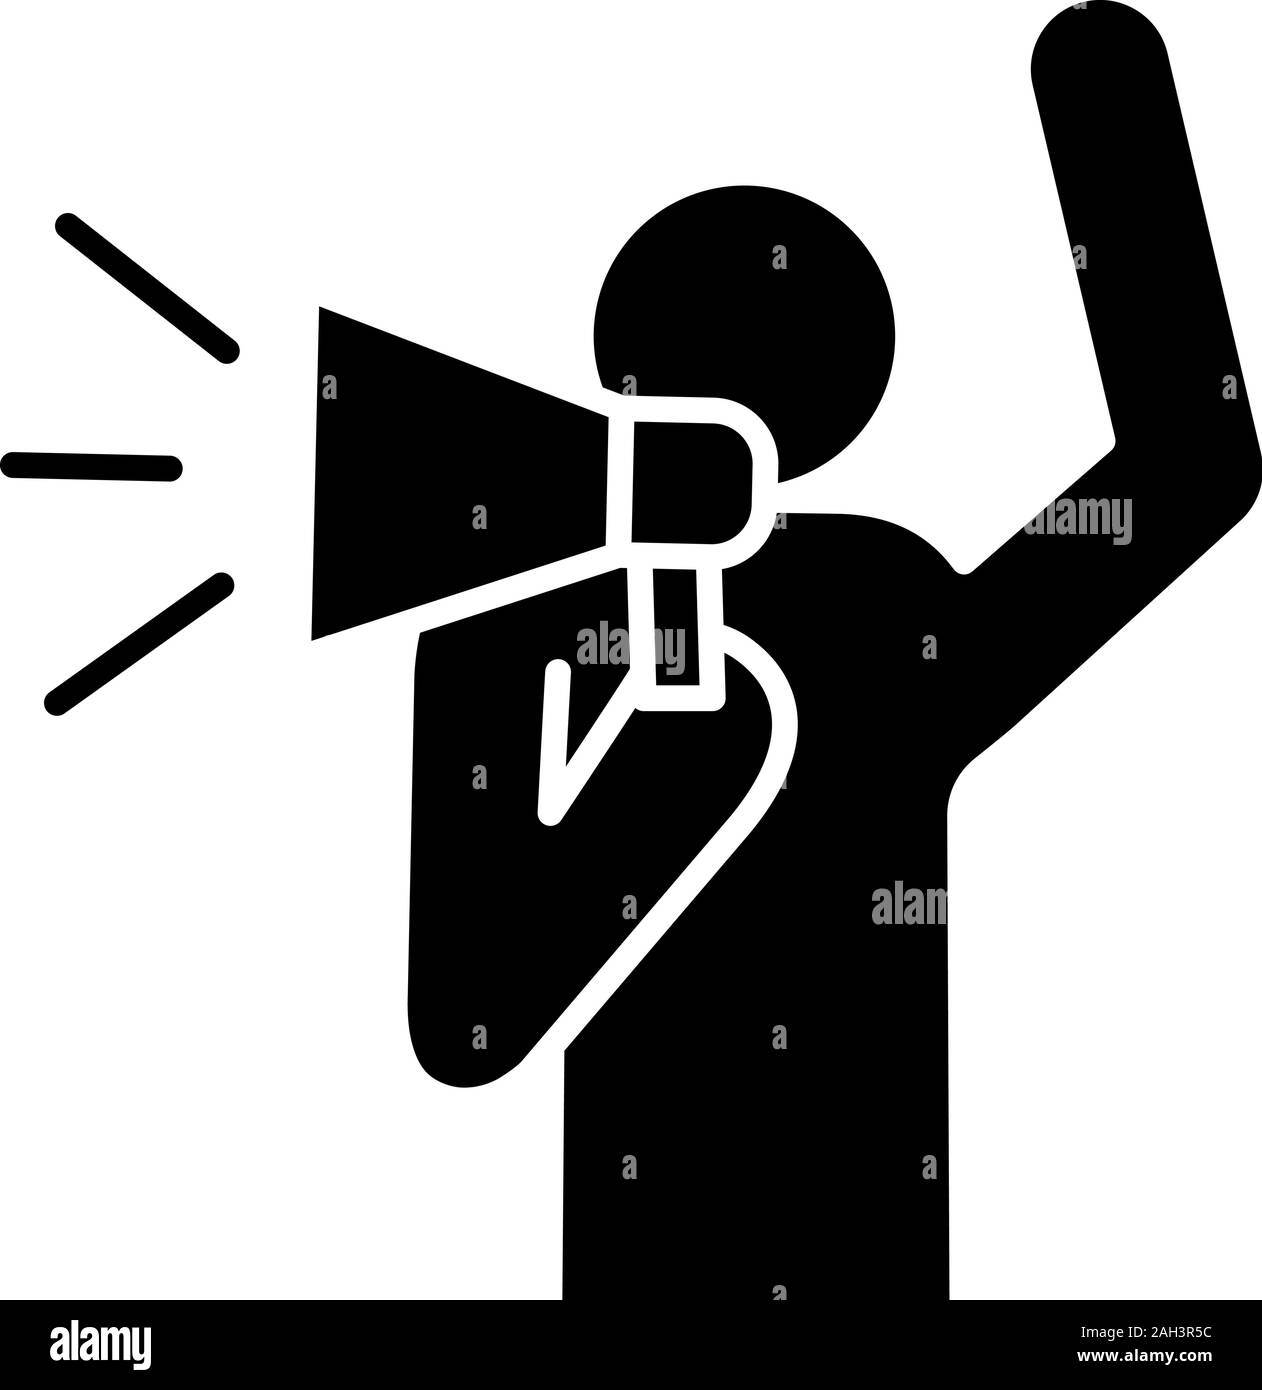 Protester glyph icon. Protest individual action. Breaking news. Protest speech. Man shouting slogans. Person holding megaphone. Silhouette symbol. Neg Stock Vector